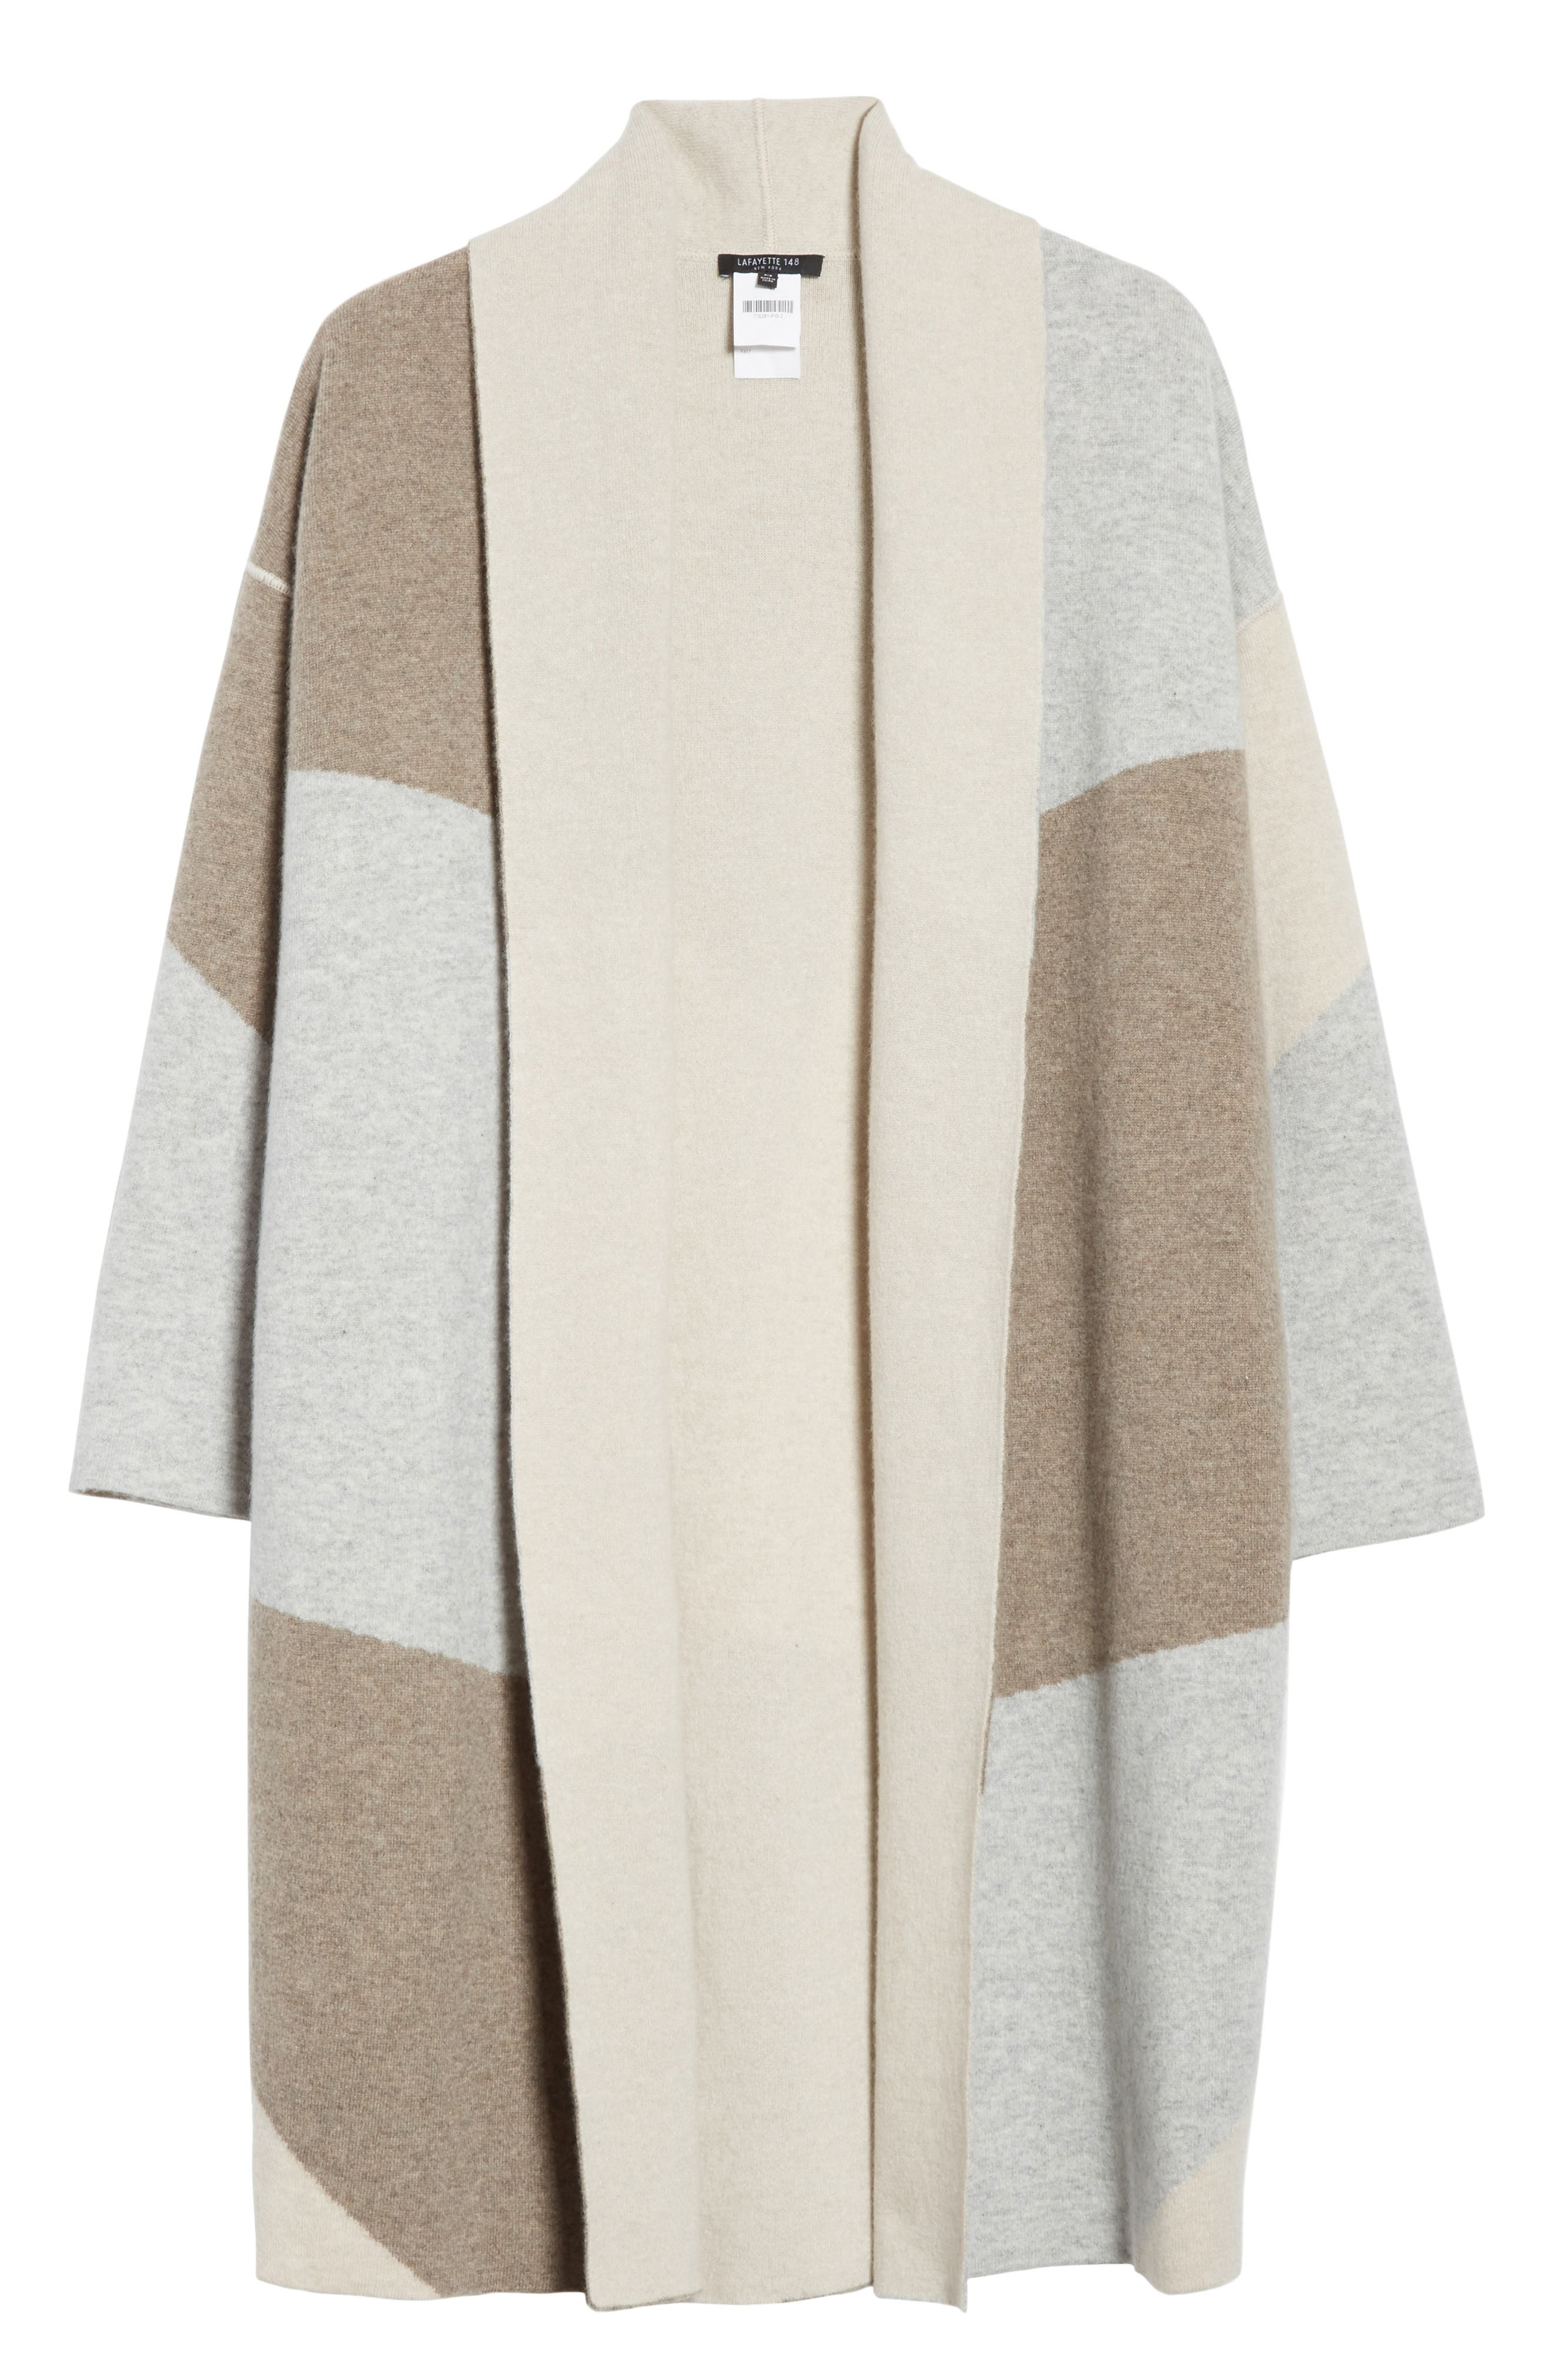 Stretch Cashmere Reversible Felted Colorblock Cardigan,                             Alternate thumbnail 6, color,                             020